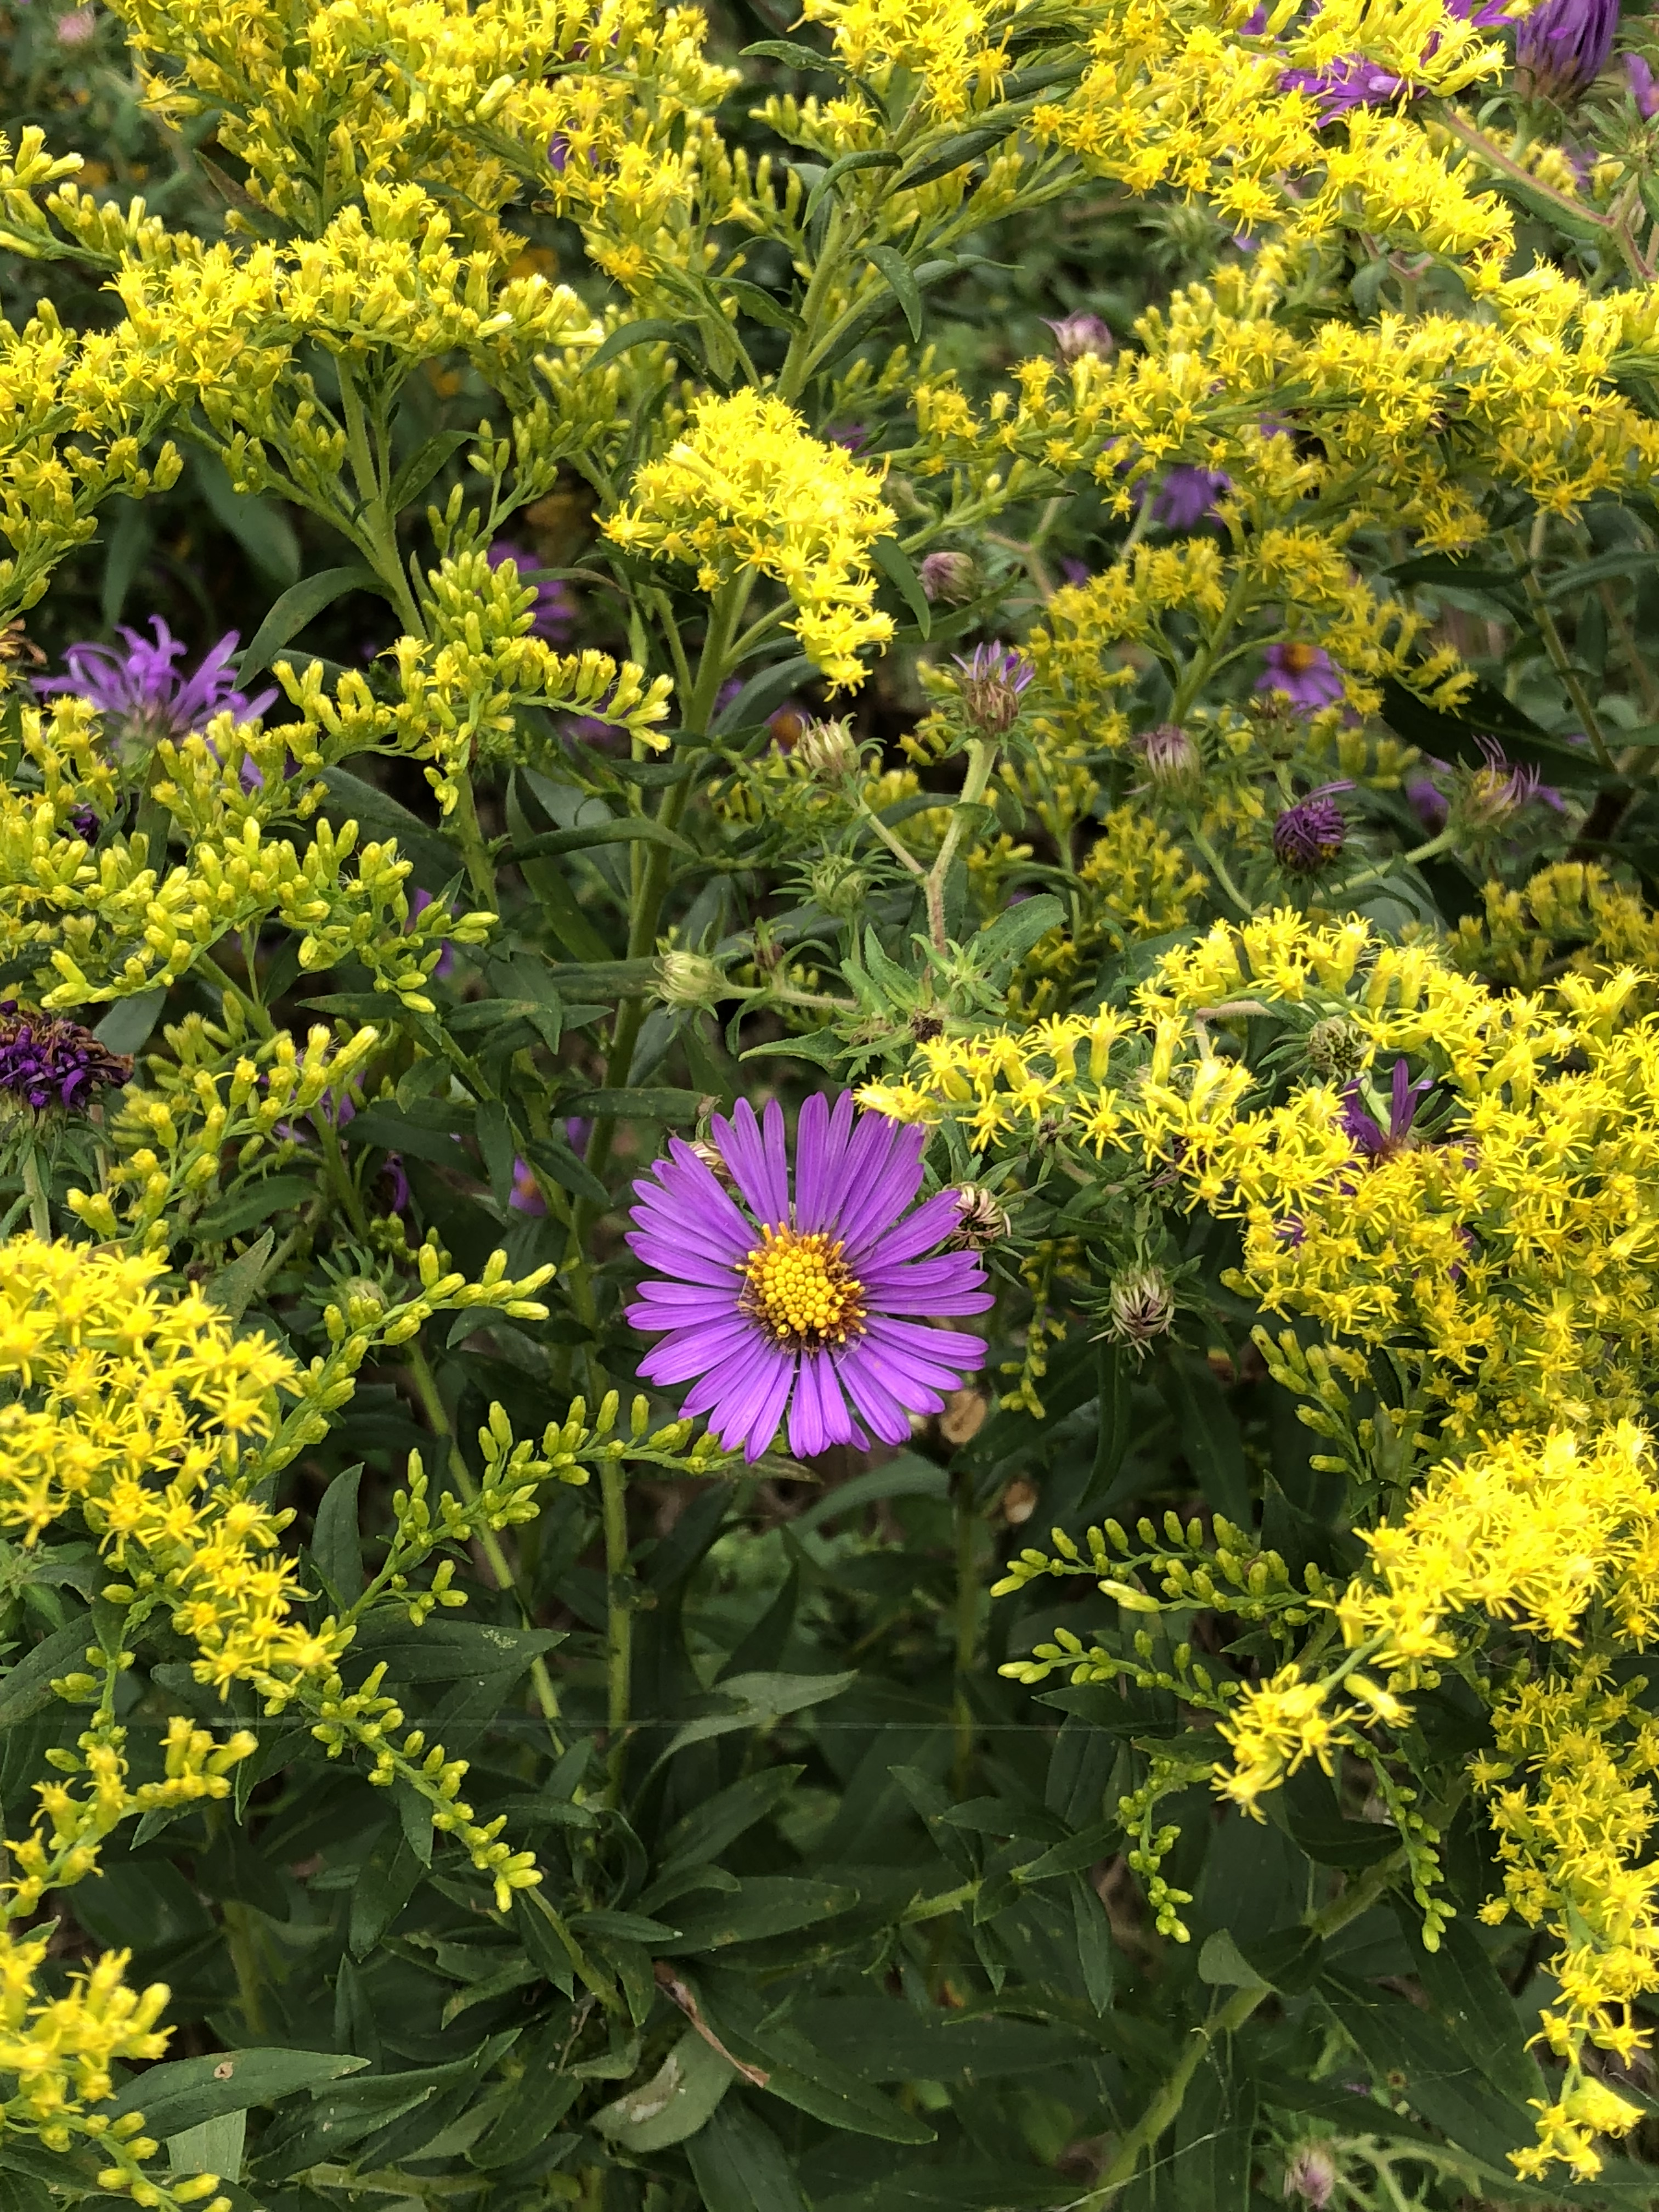 New England aster is surrounded by tall goldenrod.